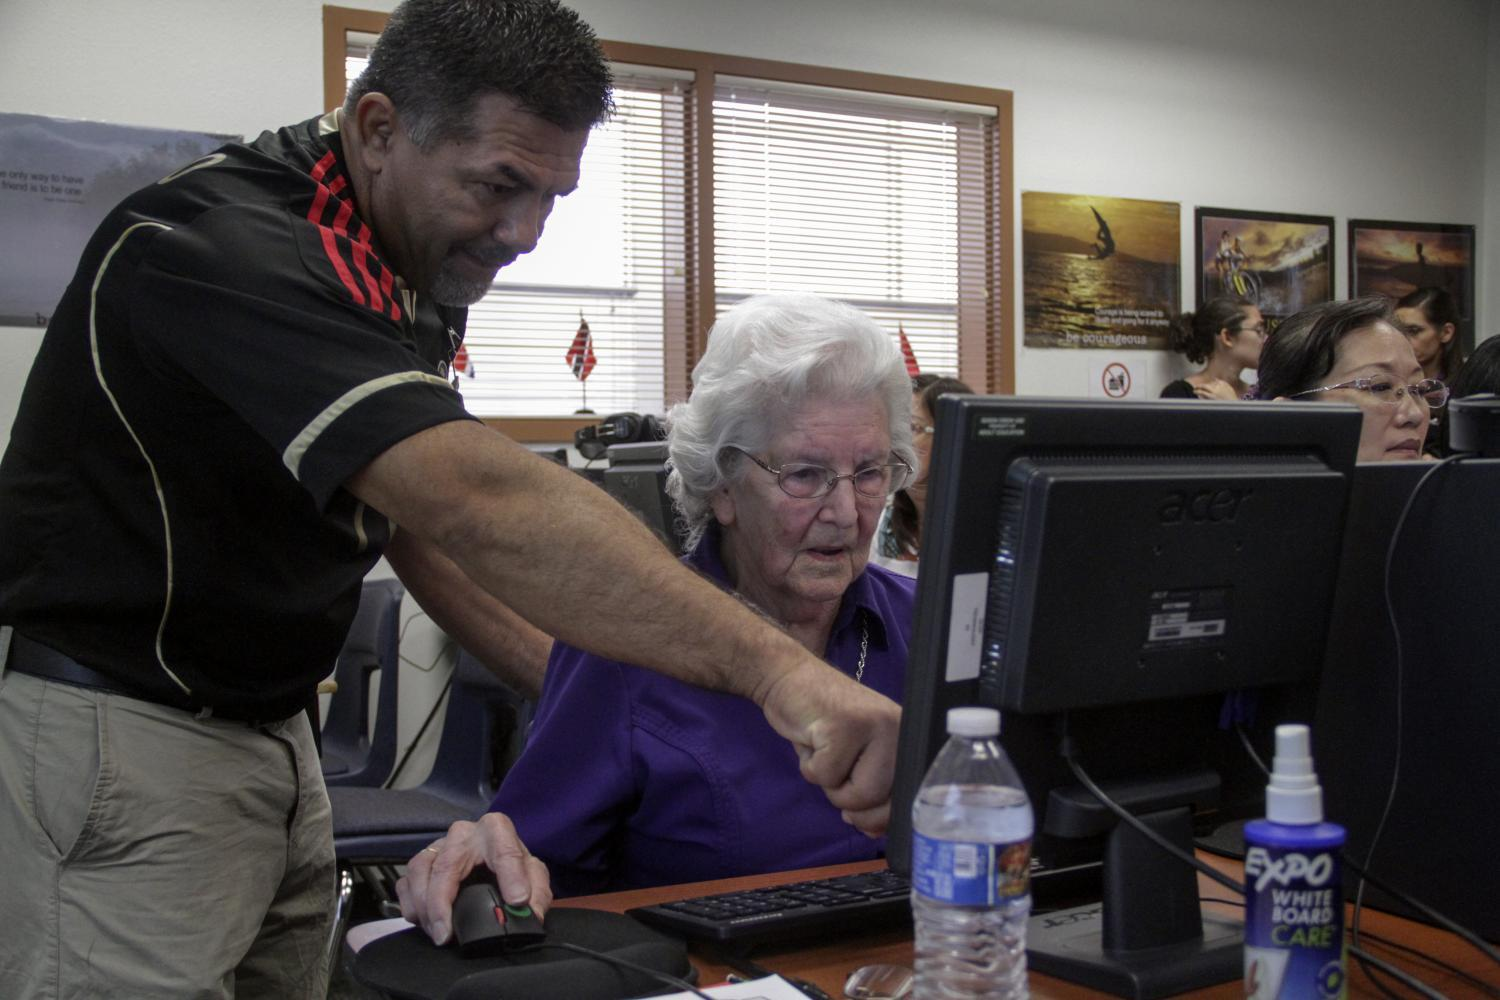 Mauricio Ramirez shows Frances Smith how to use the computer in a Queen Creek adult education class